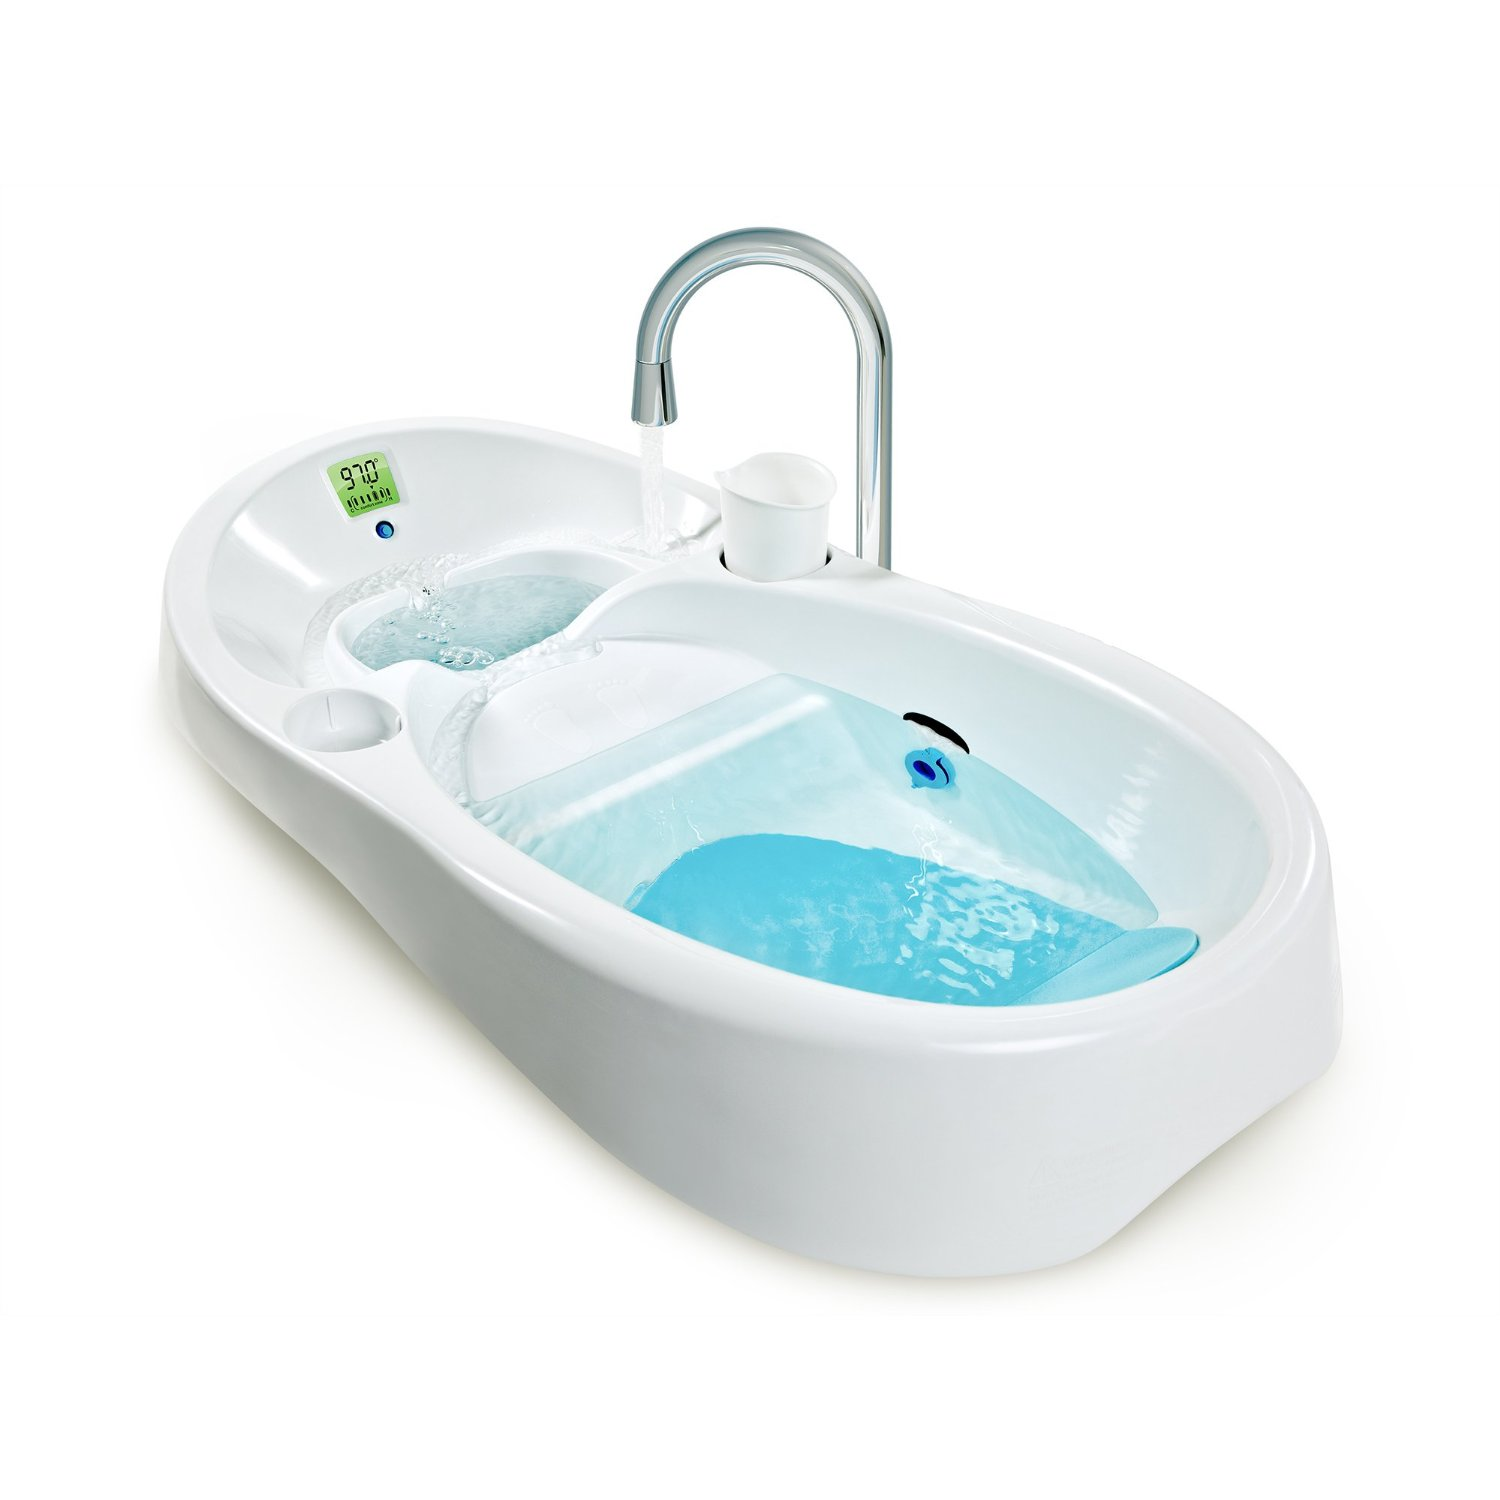 Corner 2018 Reviews Comparison Baby Bath Tub 4moms Baby Bath Tub Gift Basket Baby Bath Tub Baby Bath Tubs baby Baby Bath Tub